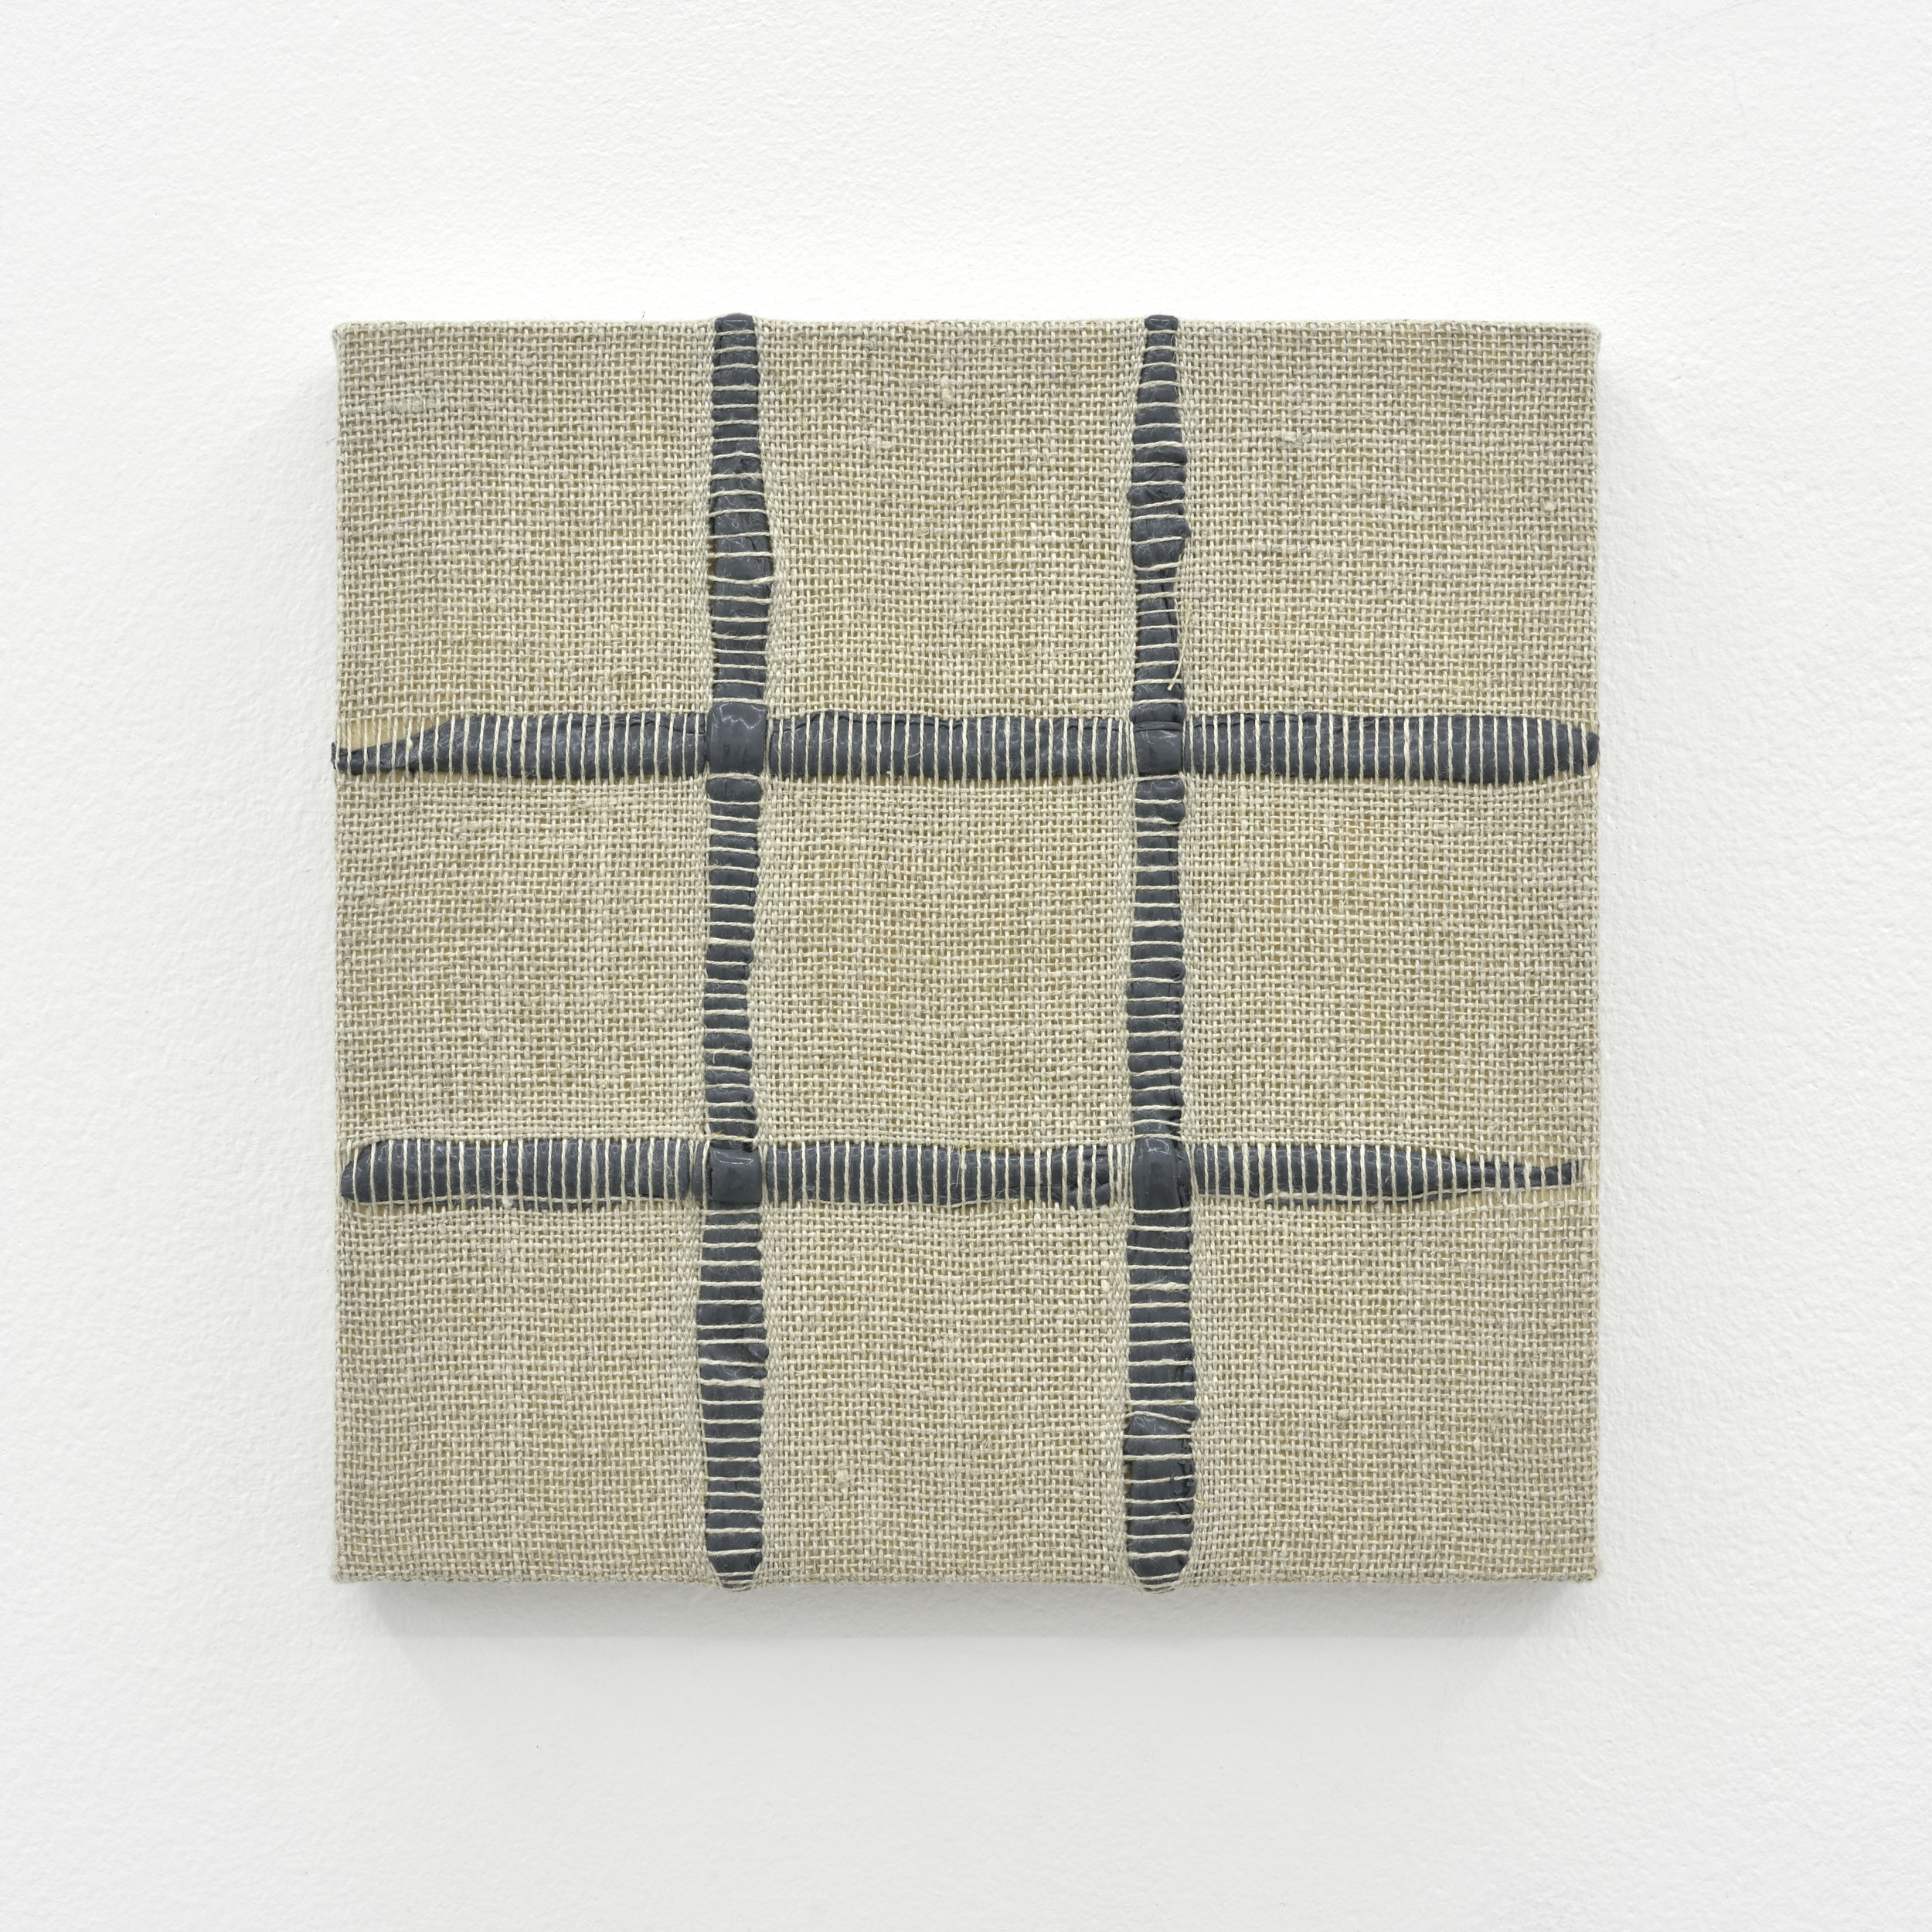 Composition for Woven 3 x 3 Grid (Gray), 2017 acrylic paint woven through linen on panel 20 x 20 x 3 cm - 7 7/8 x 7 7/8 x 1 1/8 inches